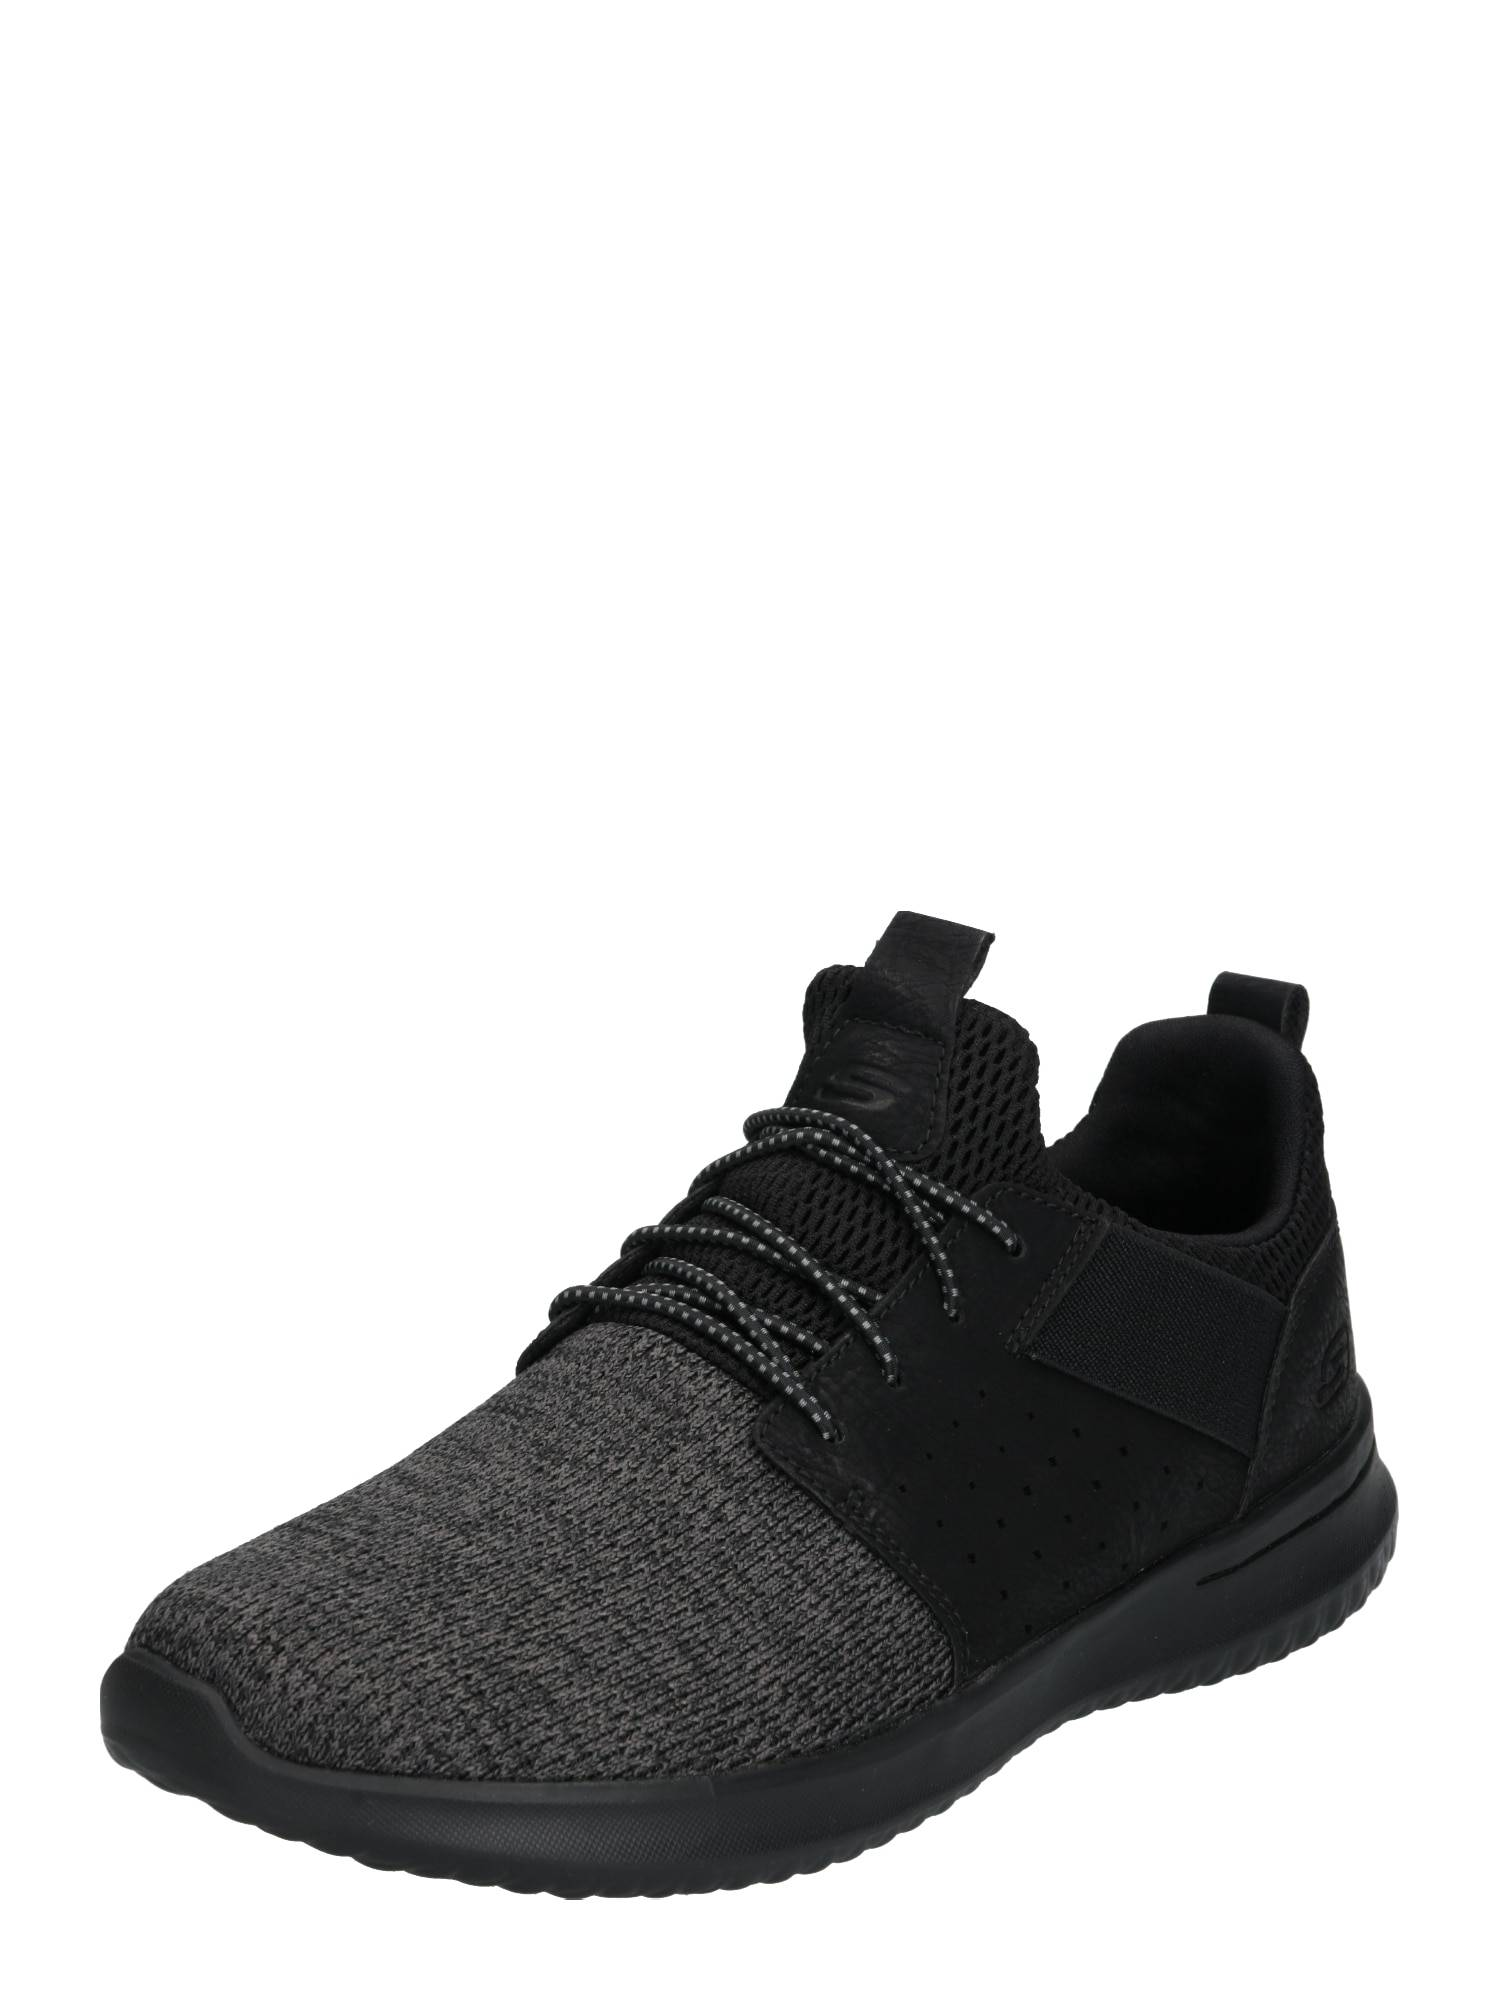 SKECHERS Baskets basses 'Delson Camben'  - Noir - Taille: 42 - male